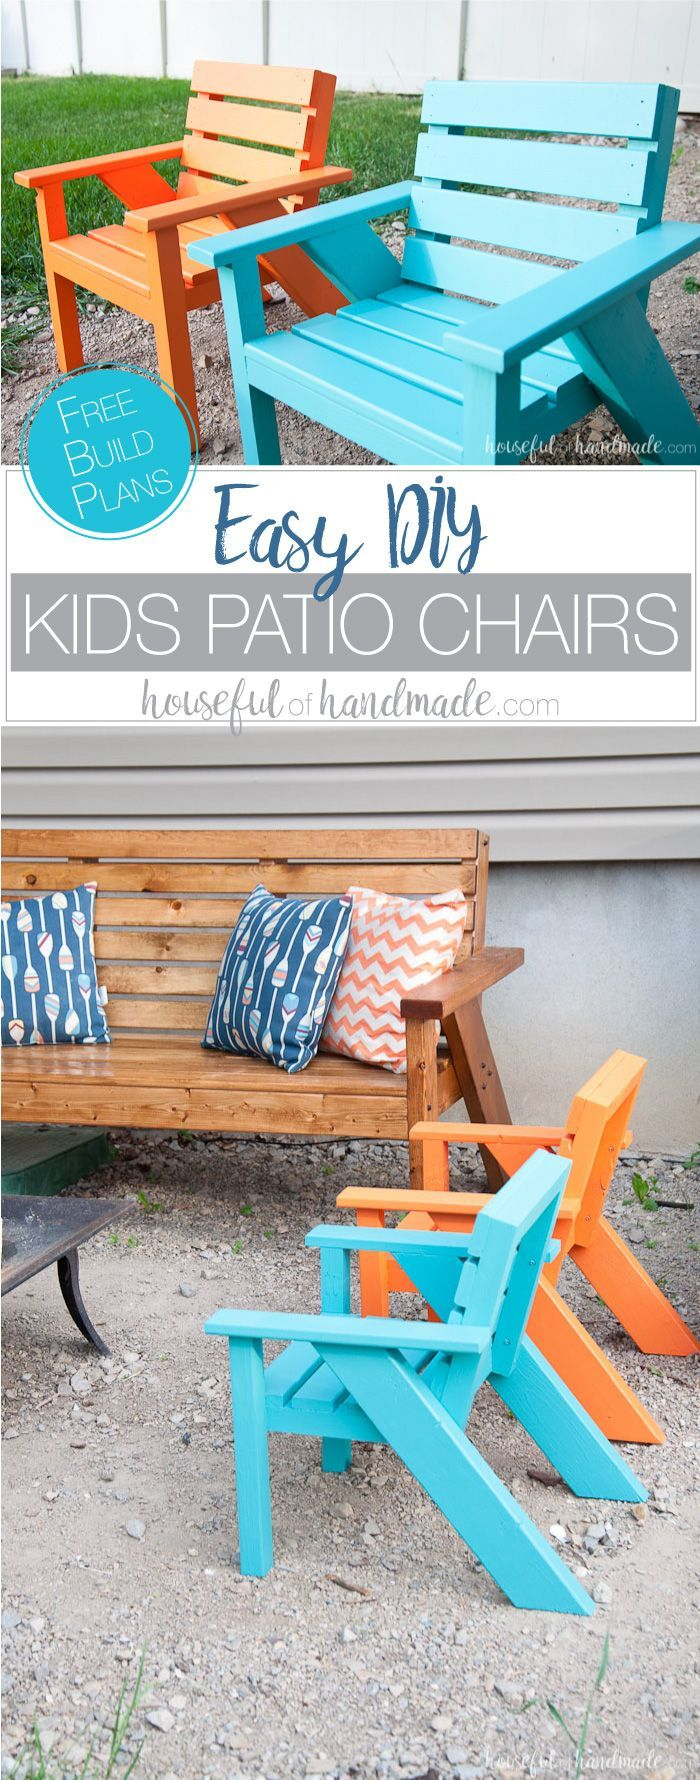 Create the perfect backyard seating with these Easy DIY kids patio chairs. The chairs are perfect for toddlers and kids to have their own space in the yard. Lightweight, but hard to tip over. Get he free build plans today! Housefulofhandmade.com | Free Build Plans | Kids Outdoor Chairs | Modern Adirondack Chairs | Colorful Kids Chairs | DIY Patio Furniture | How to Build Patio Furniture |Kreg Jig